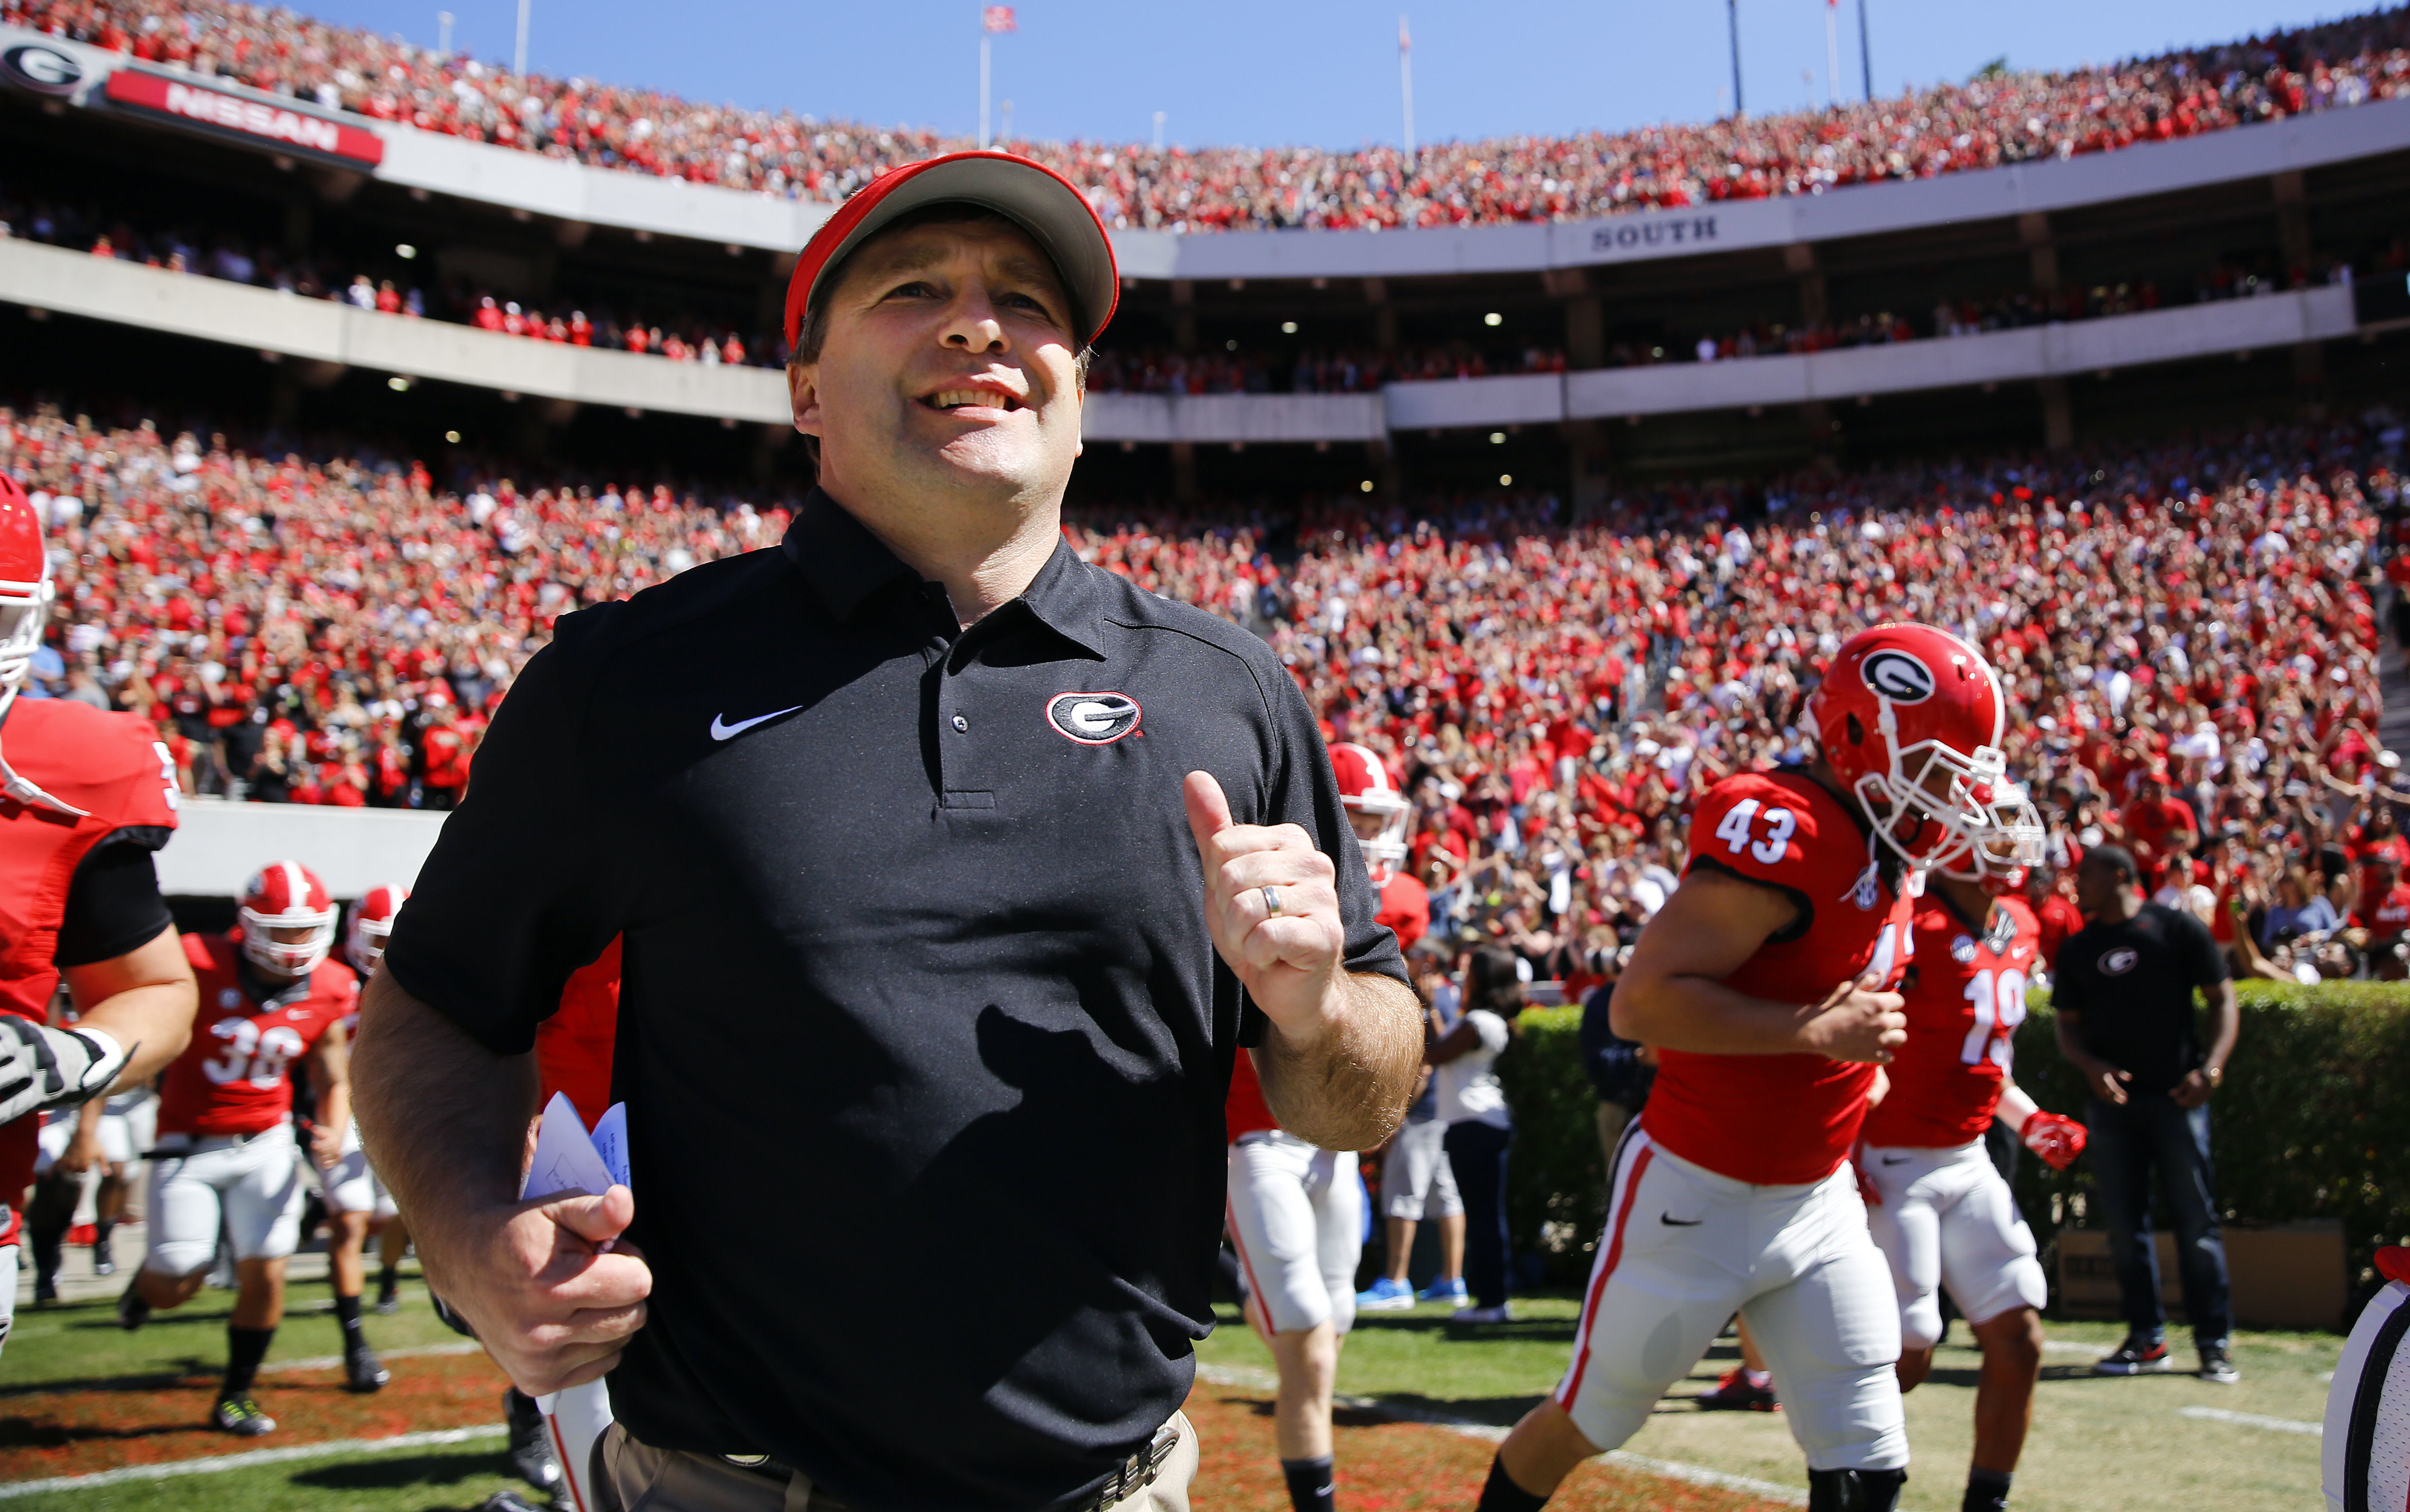 FILE - In this April 16, 2016 file photo, Georgia first-year head coach Kirby Smart runs into a packed Sandford Stadium with his players for the school's spring NCAA college football game in Athens, Ga. The Southeastern Conference Eastern Divisions new lo